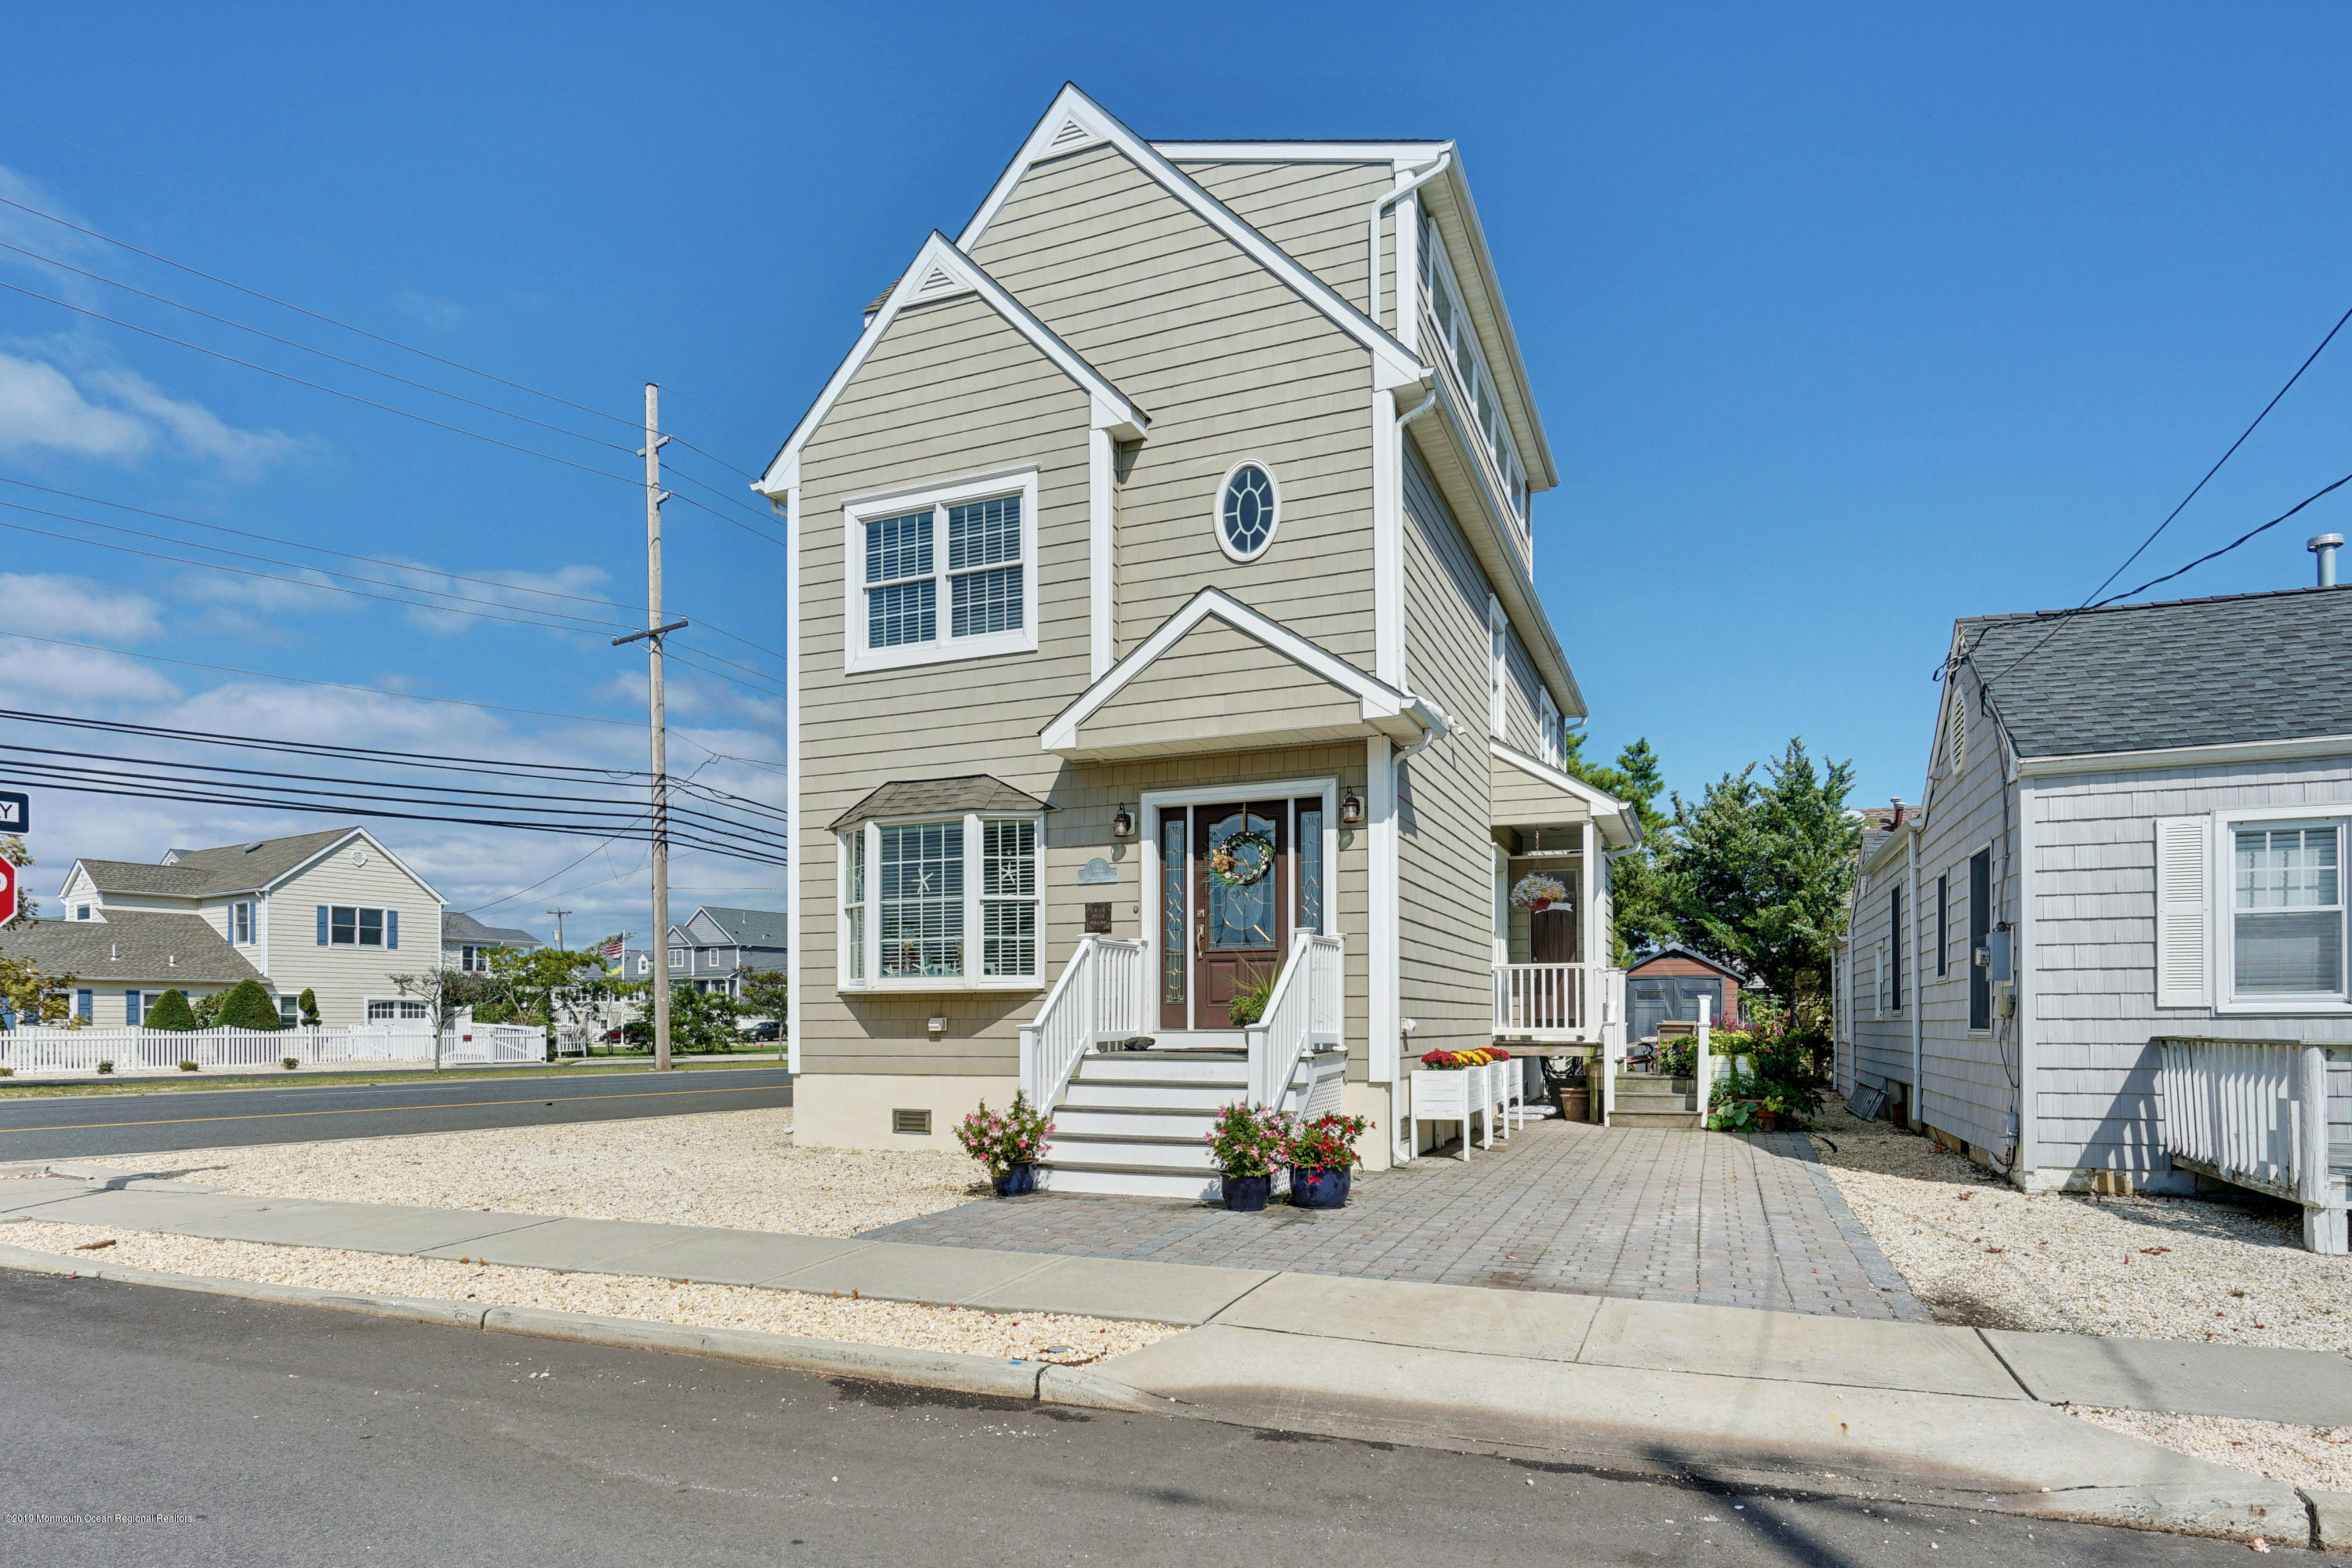 Photo of 122 4th Avenue, Normandy Beach, NJ 08739